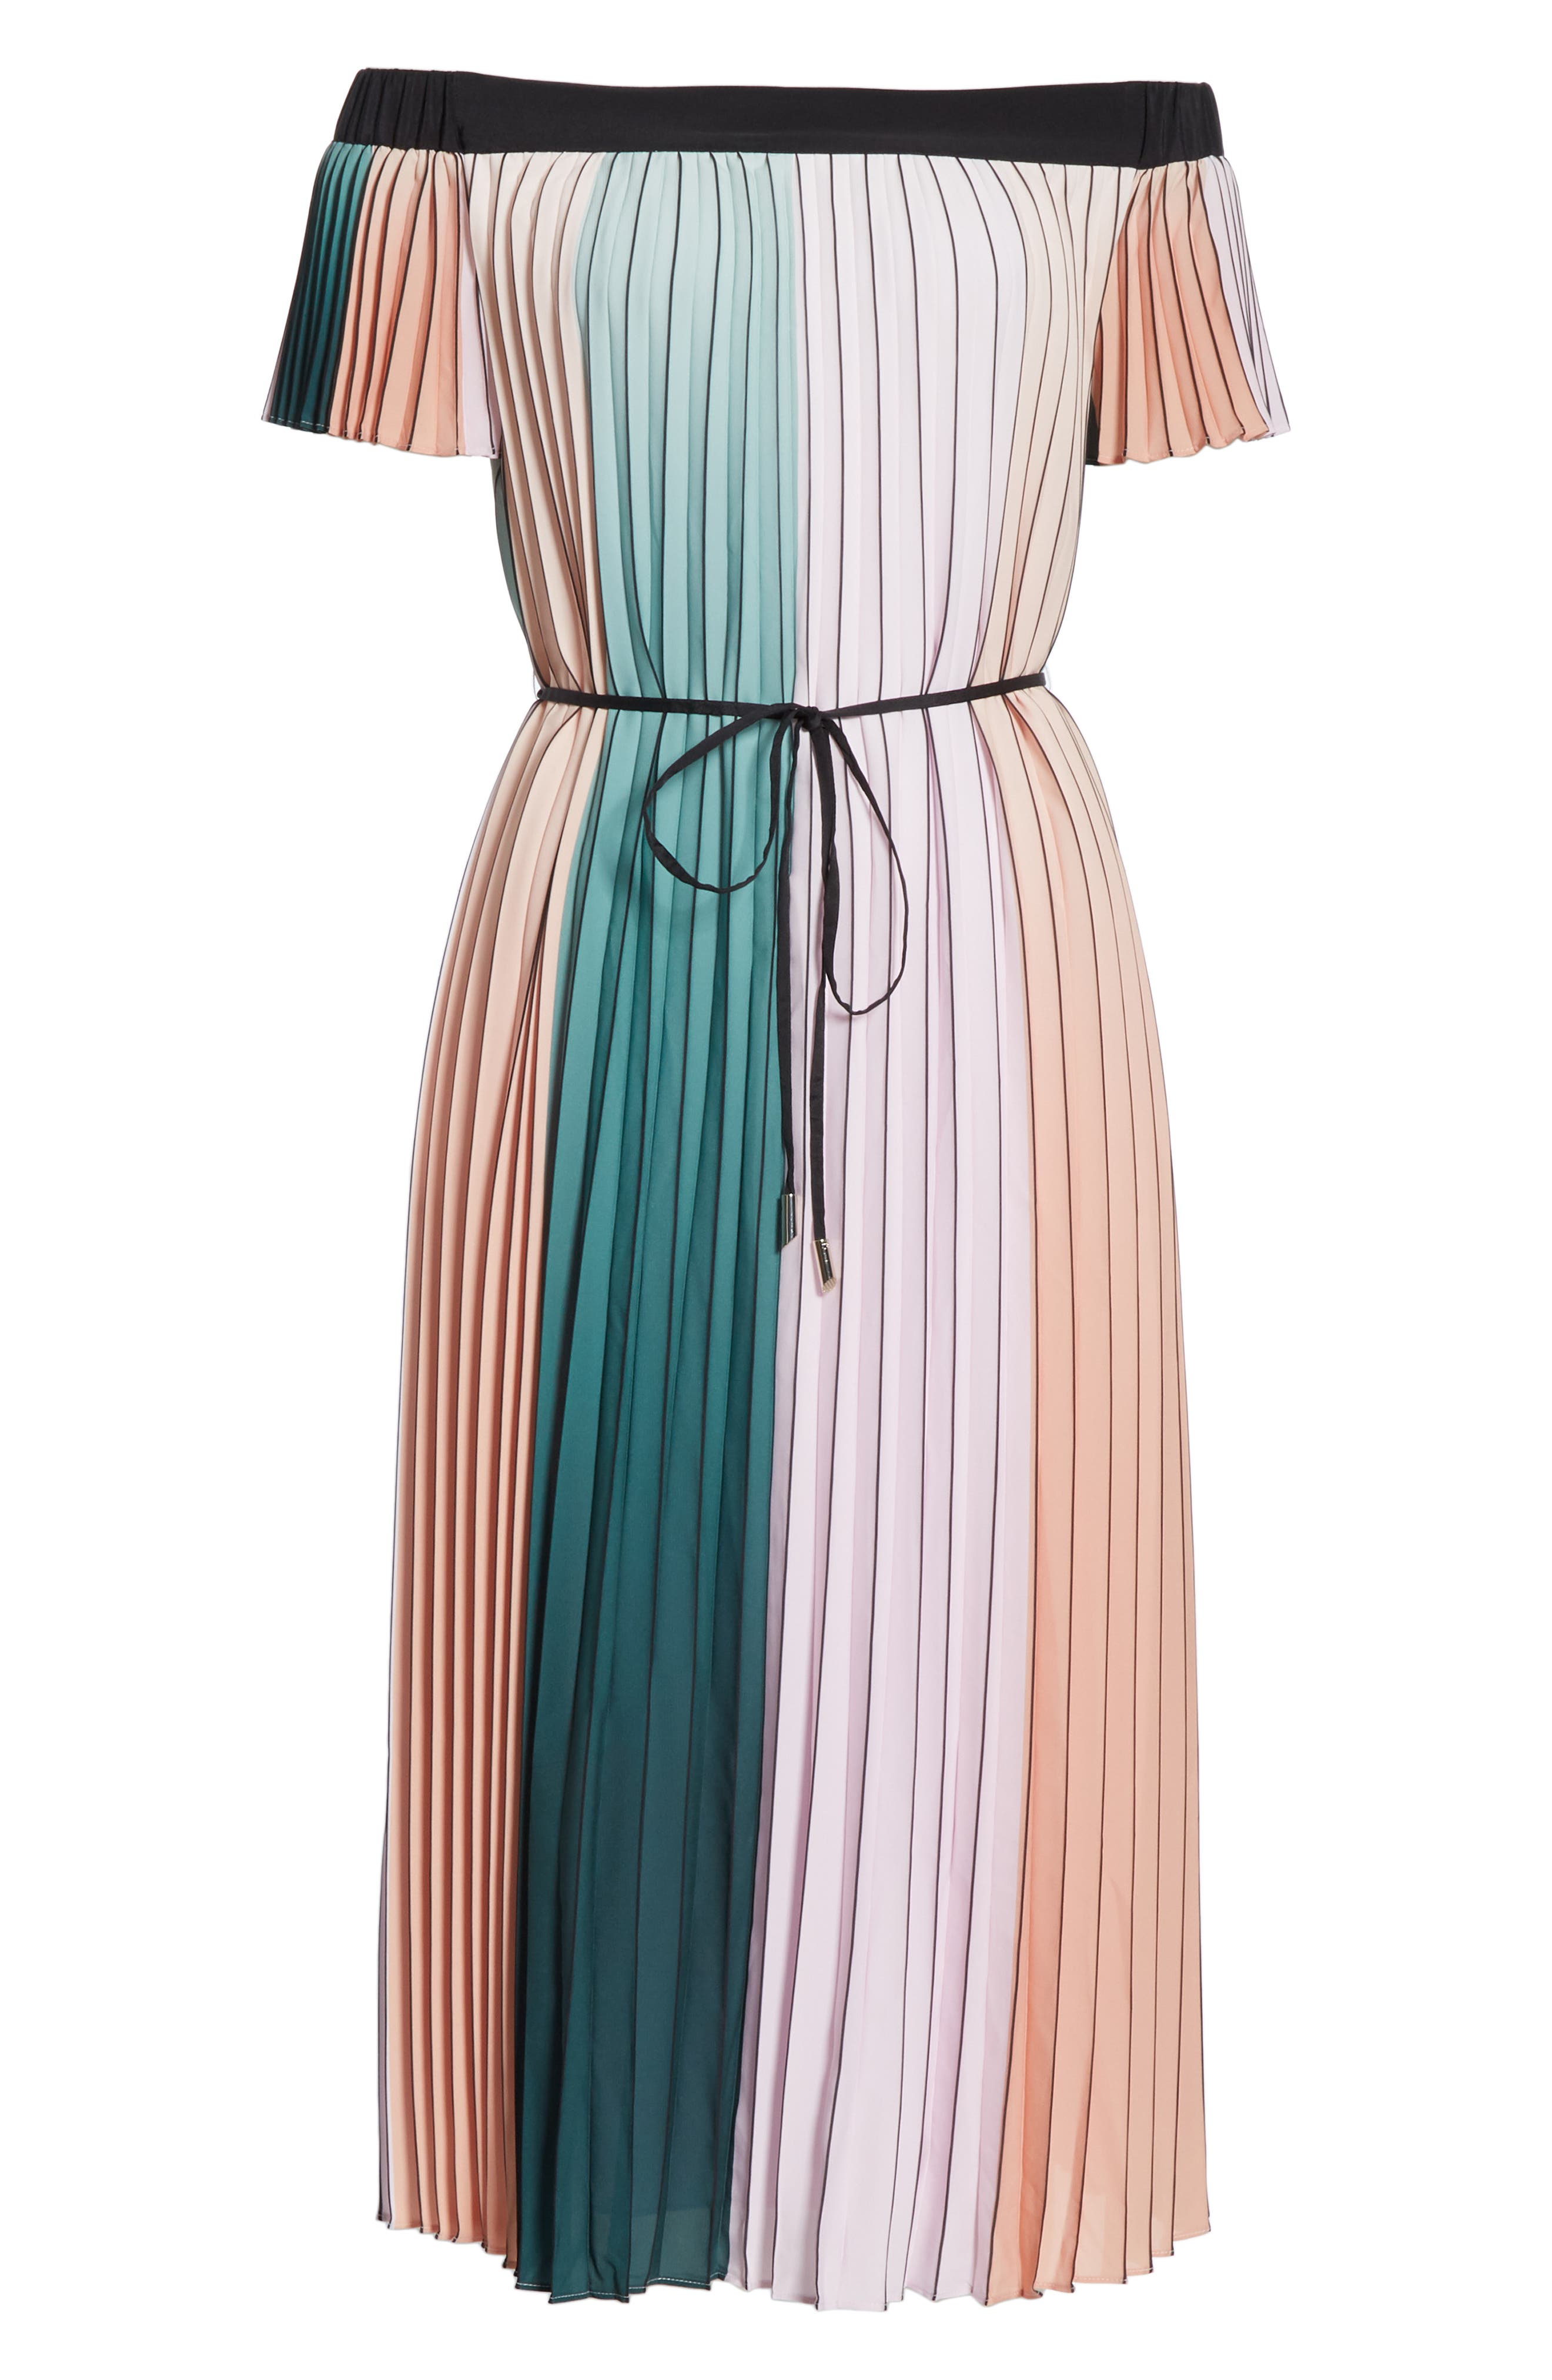 TED BAKER LONDON, Fernee Colorblock Pleated Dress, Alternate thumbnail 7, color, LILAC